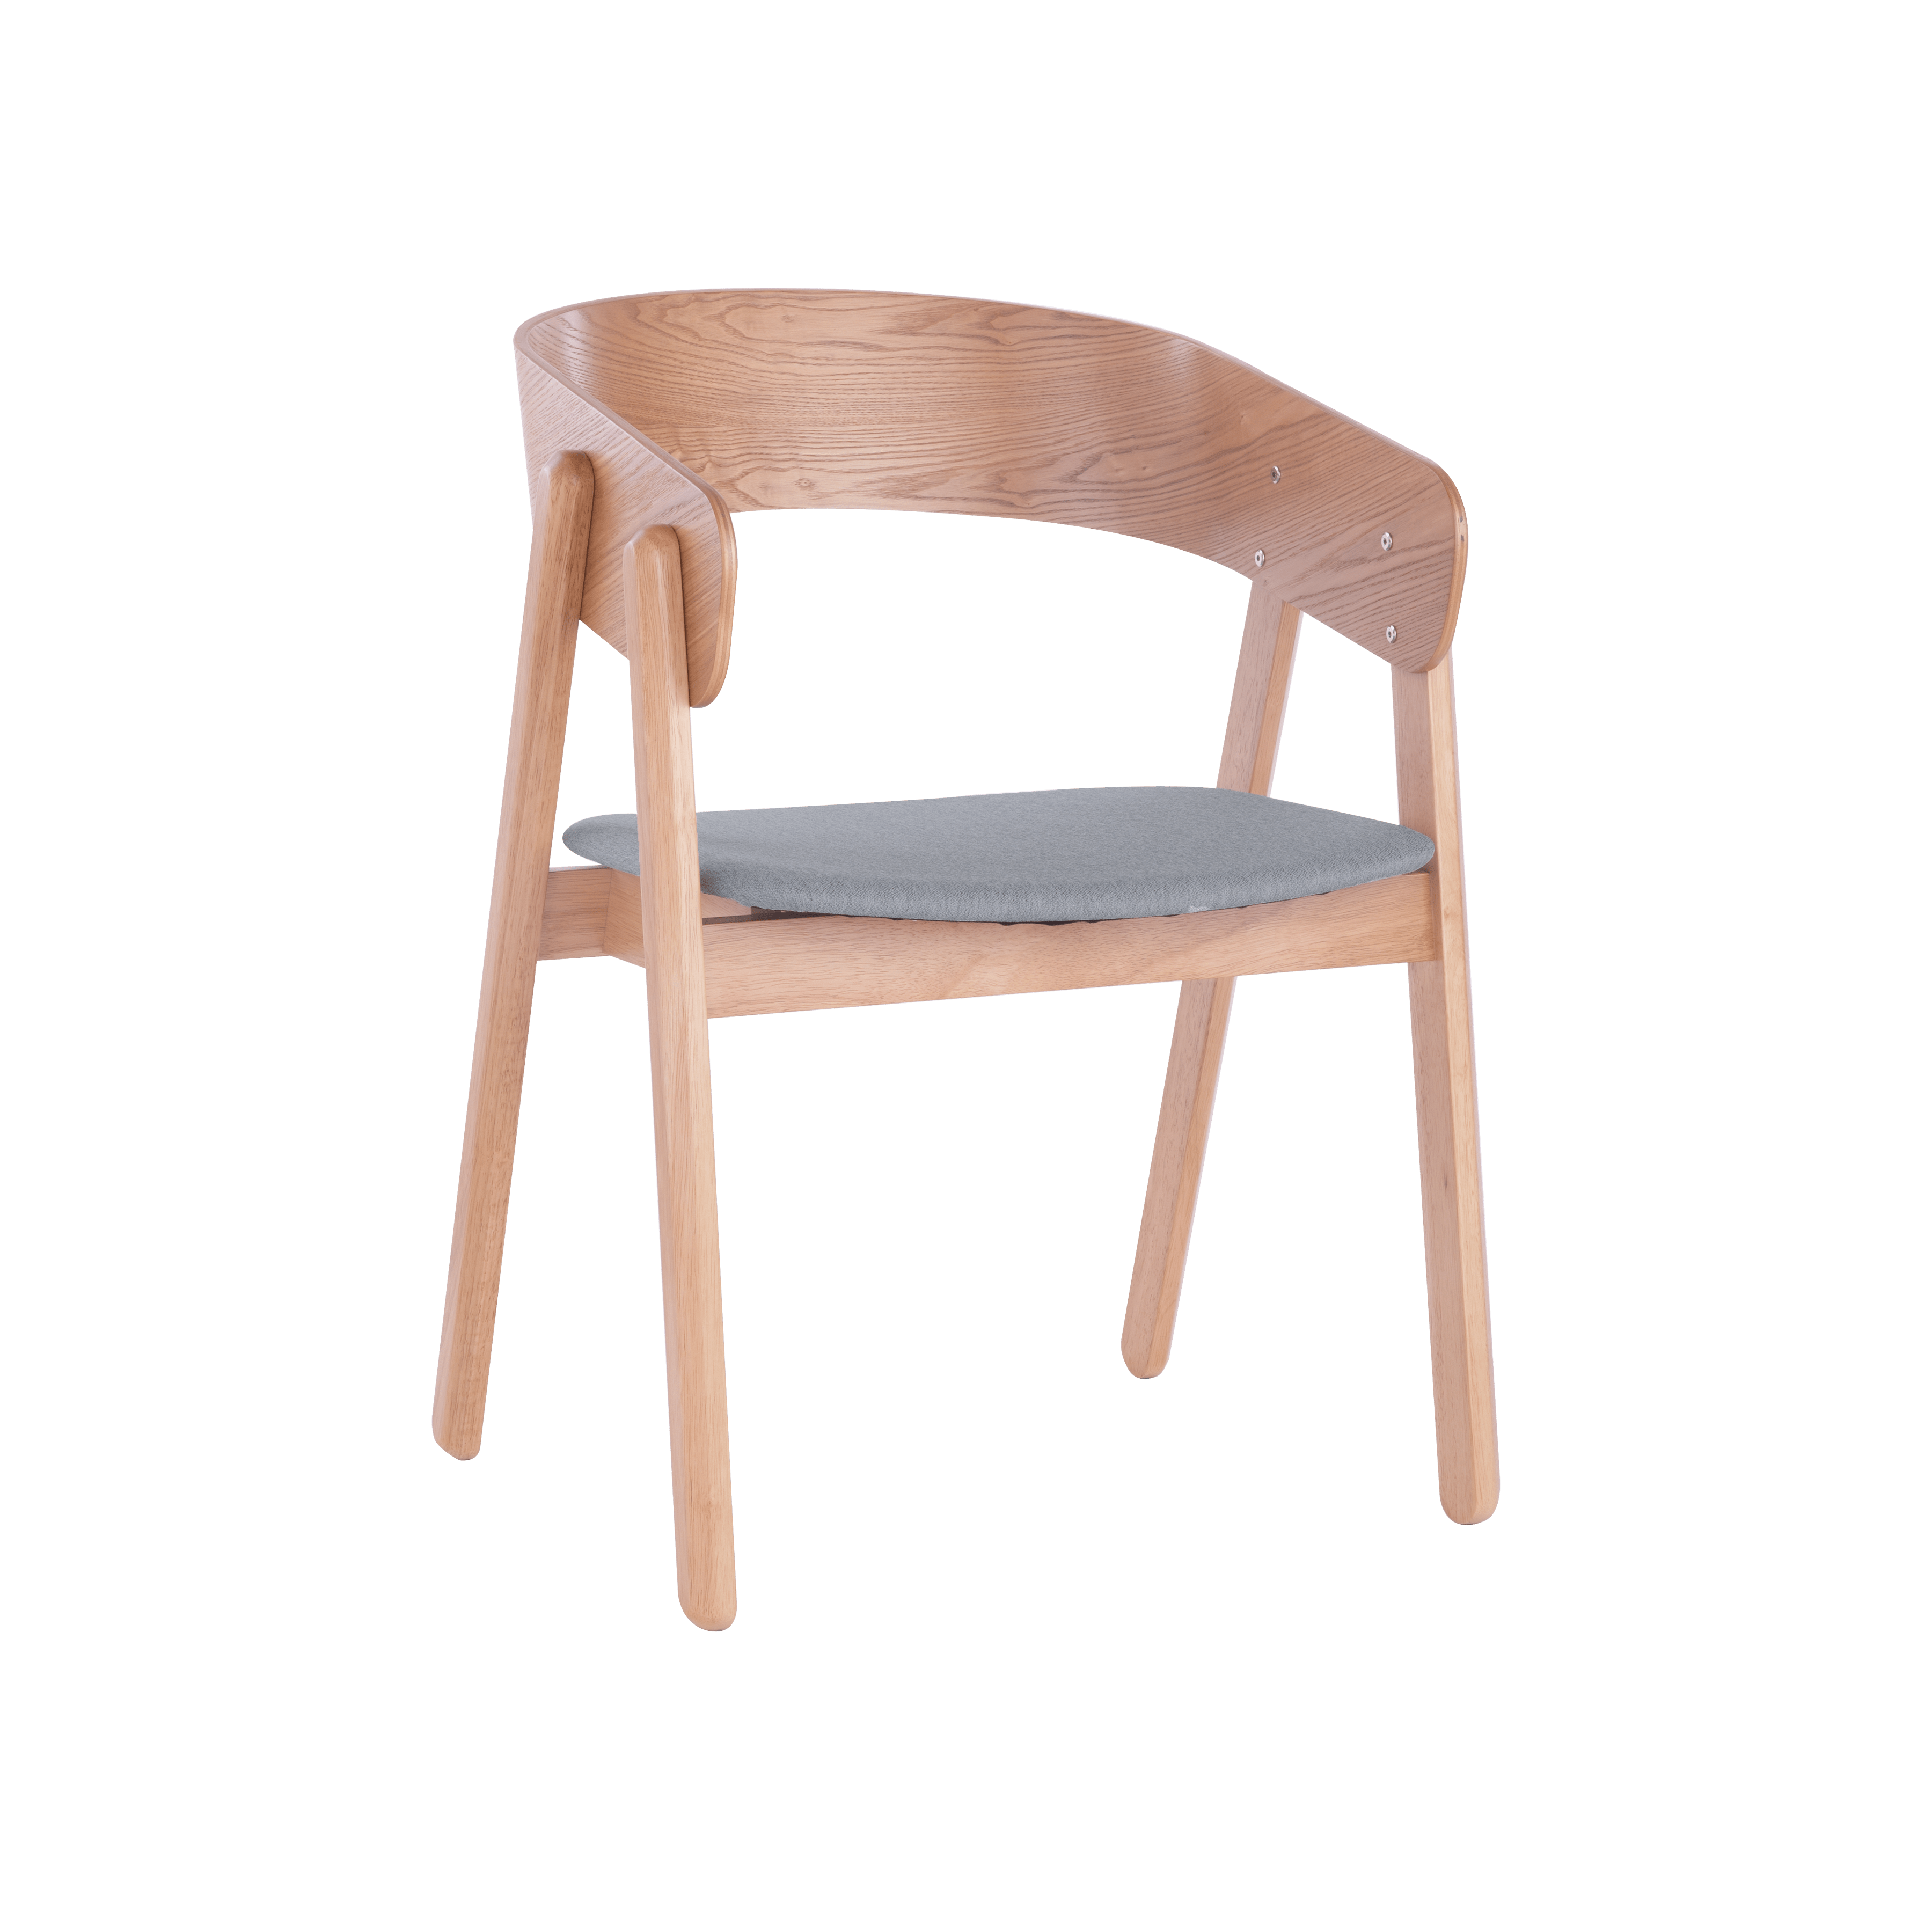 Goldy-dining-chair-oak-lightgrey-angle.png?w=300;fm=jpg;q=80?fm=jpg;q=85;w=300